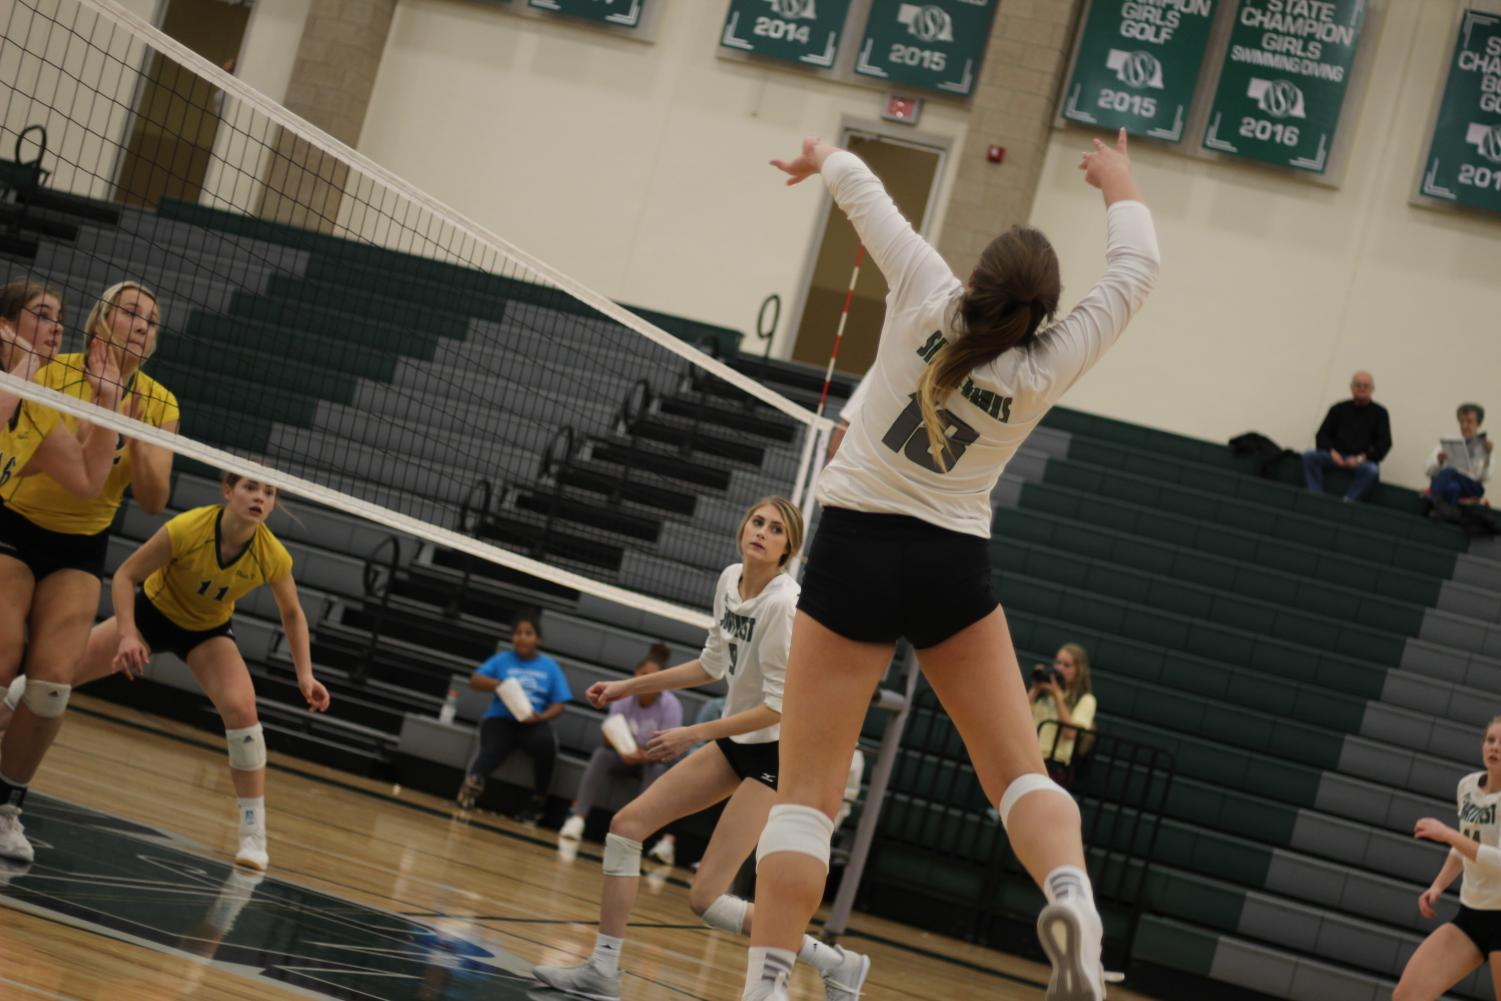 Sophomore Shaylee Myers spikes the ball to the opposing team. Southwest lost to Pius X 3-0 sets in the HAC Tournament.